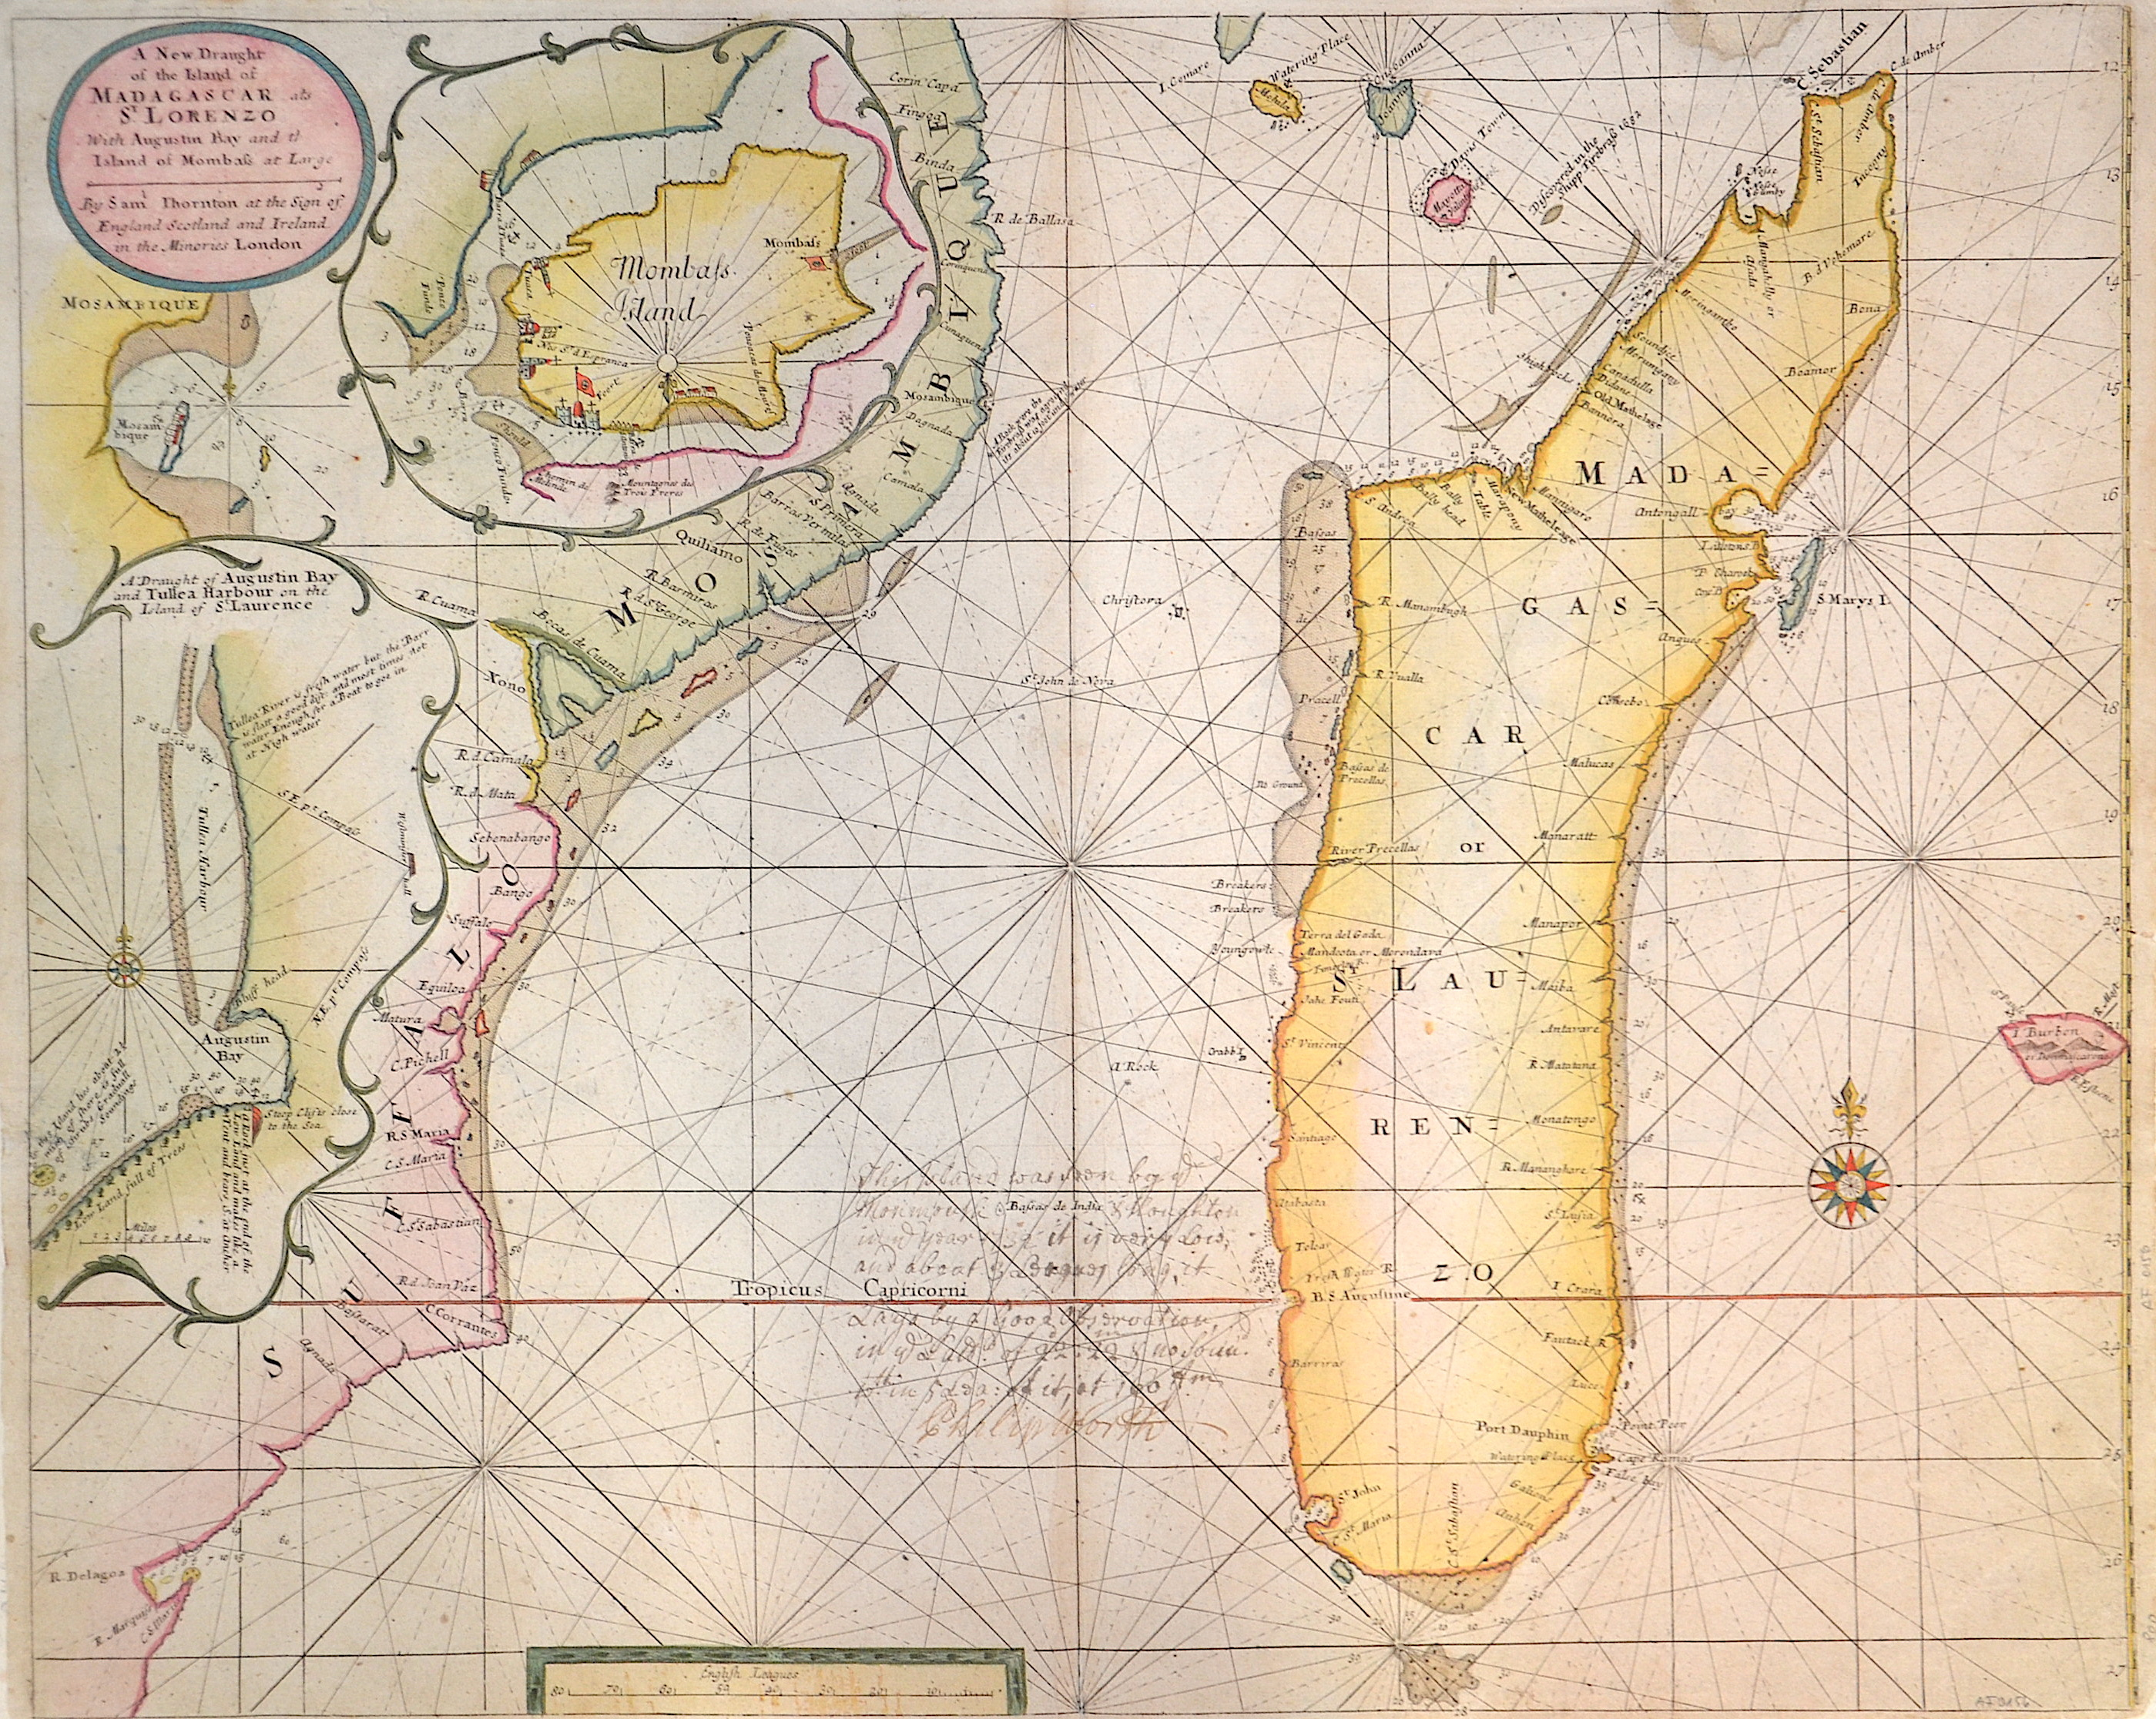 Thornton  A new Draught of the island of Madagascar ats St. Lorenzo with Augustin Bay and the island of Mombaza at large